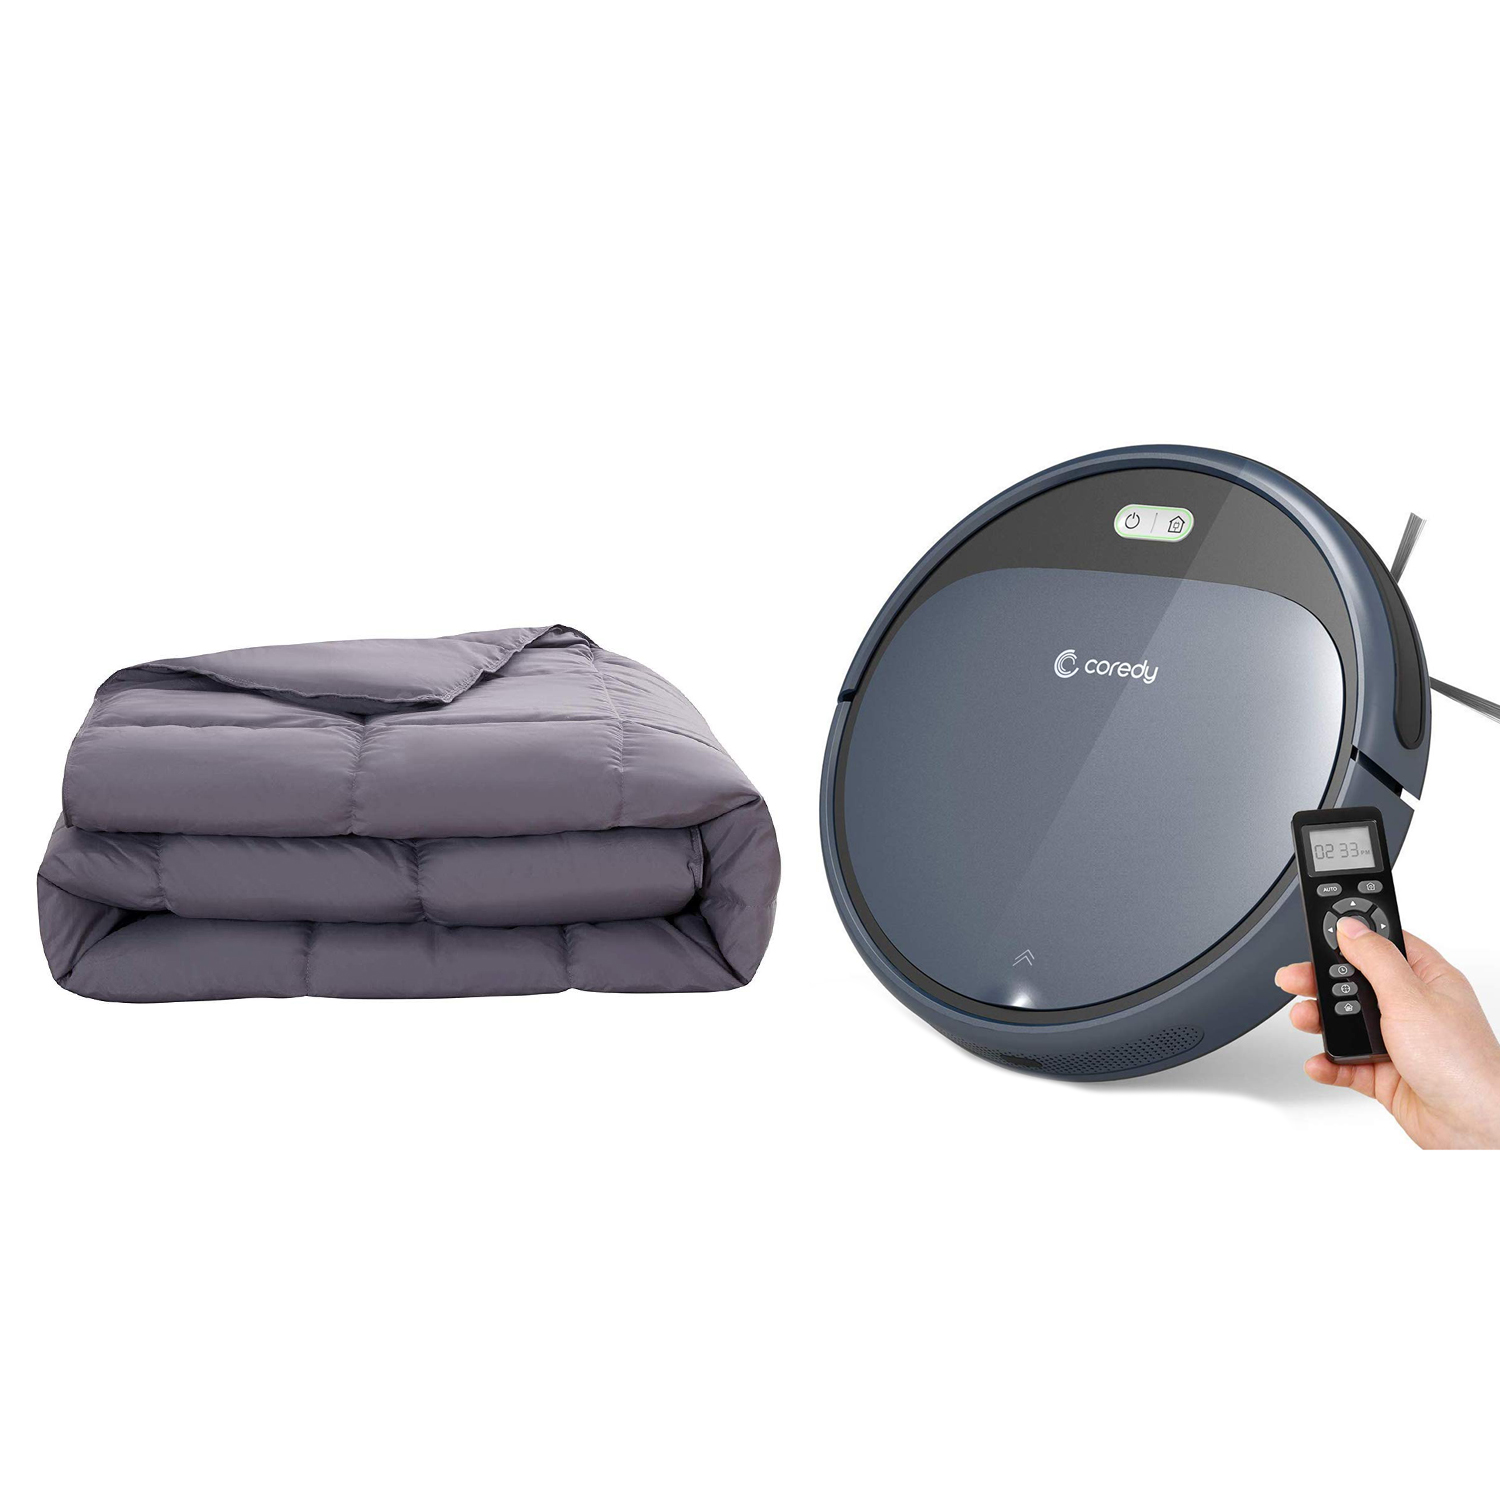 Royal Hotel Twin/Twin XL Comforter and Coredy Robot Vacuum Cleaner